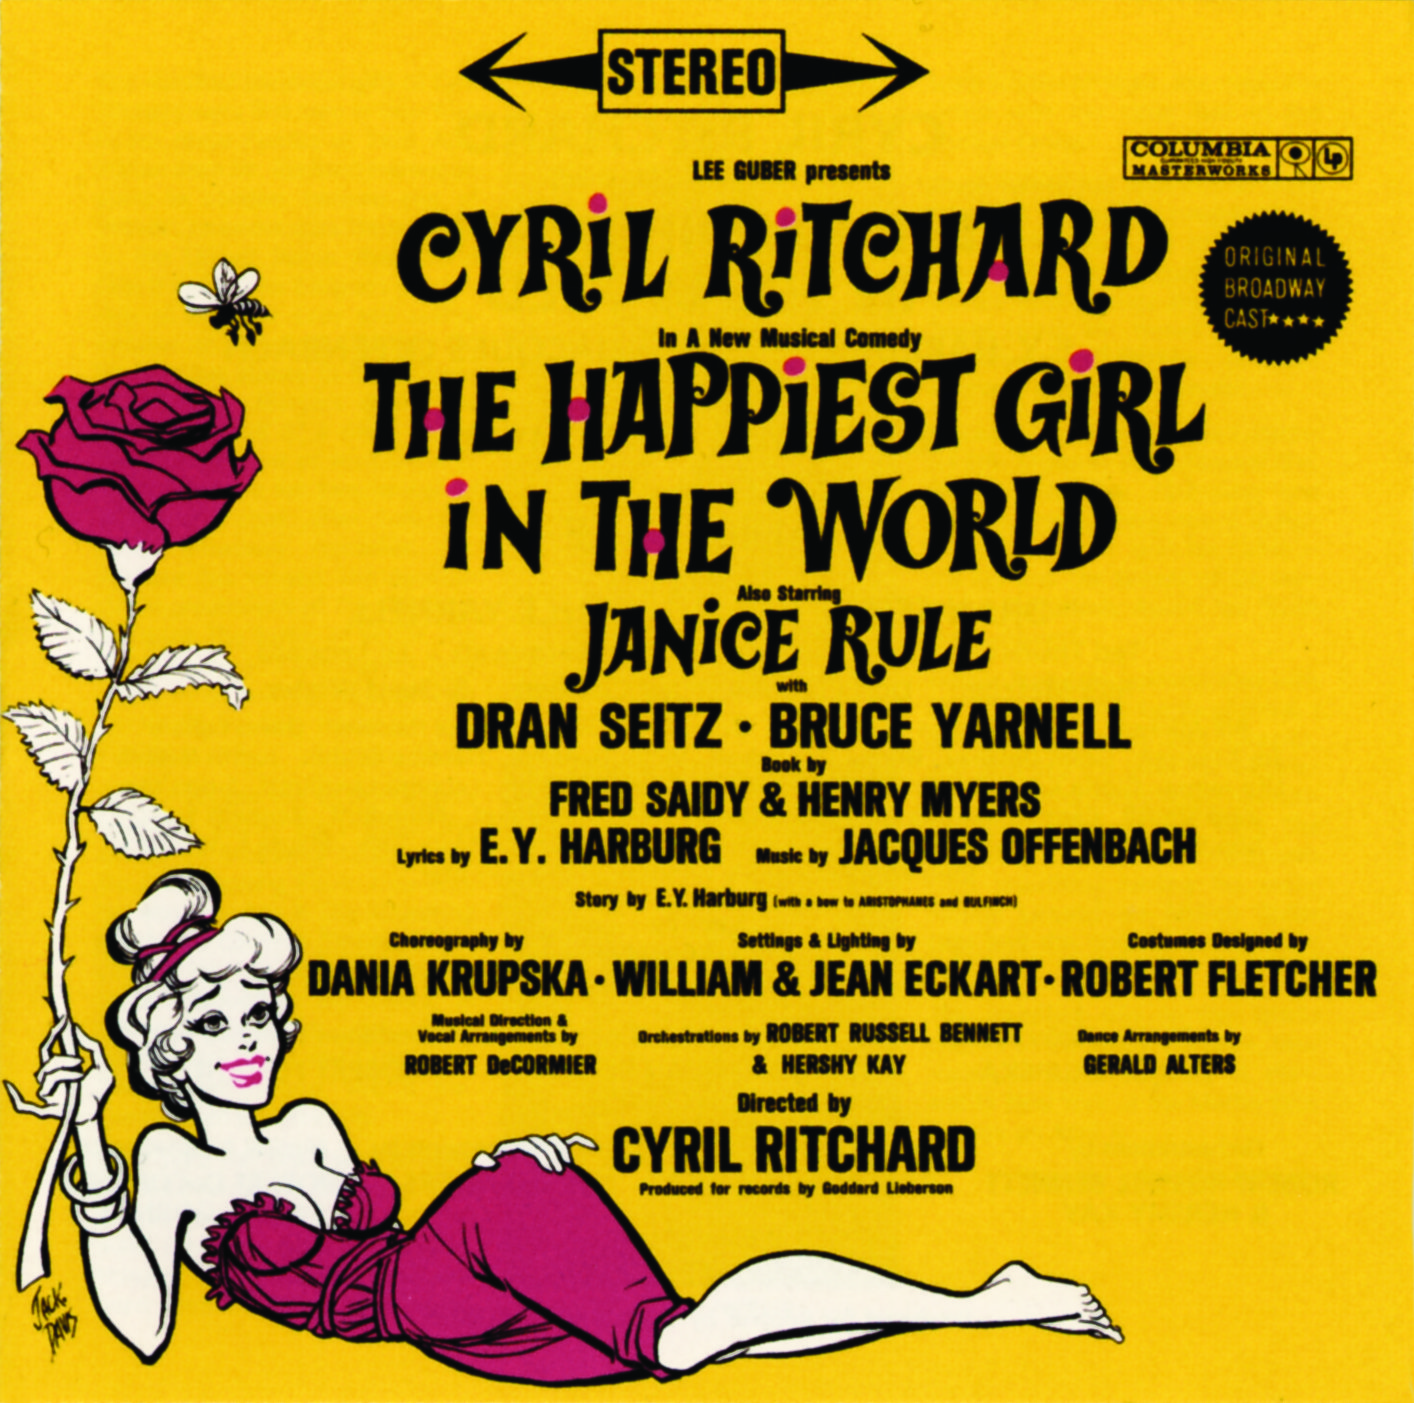 cyril ritchard wedding